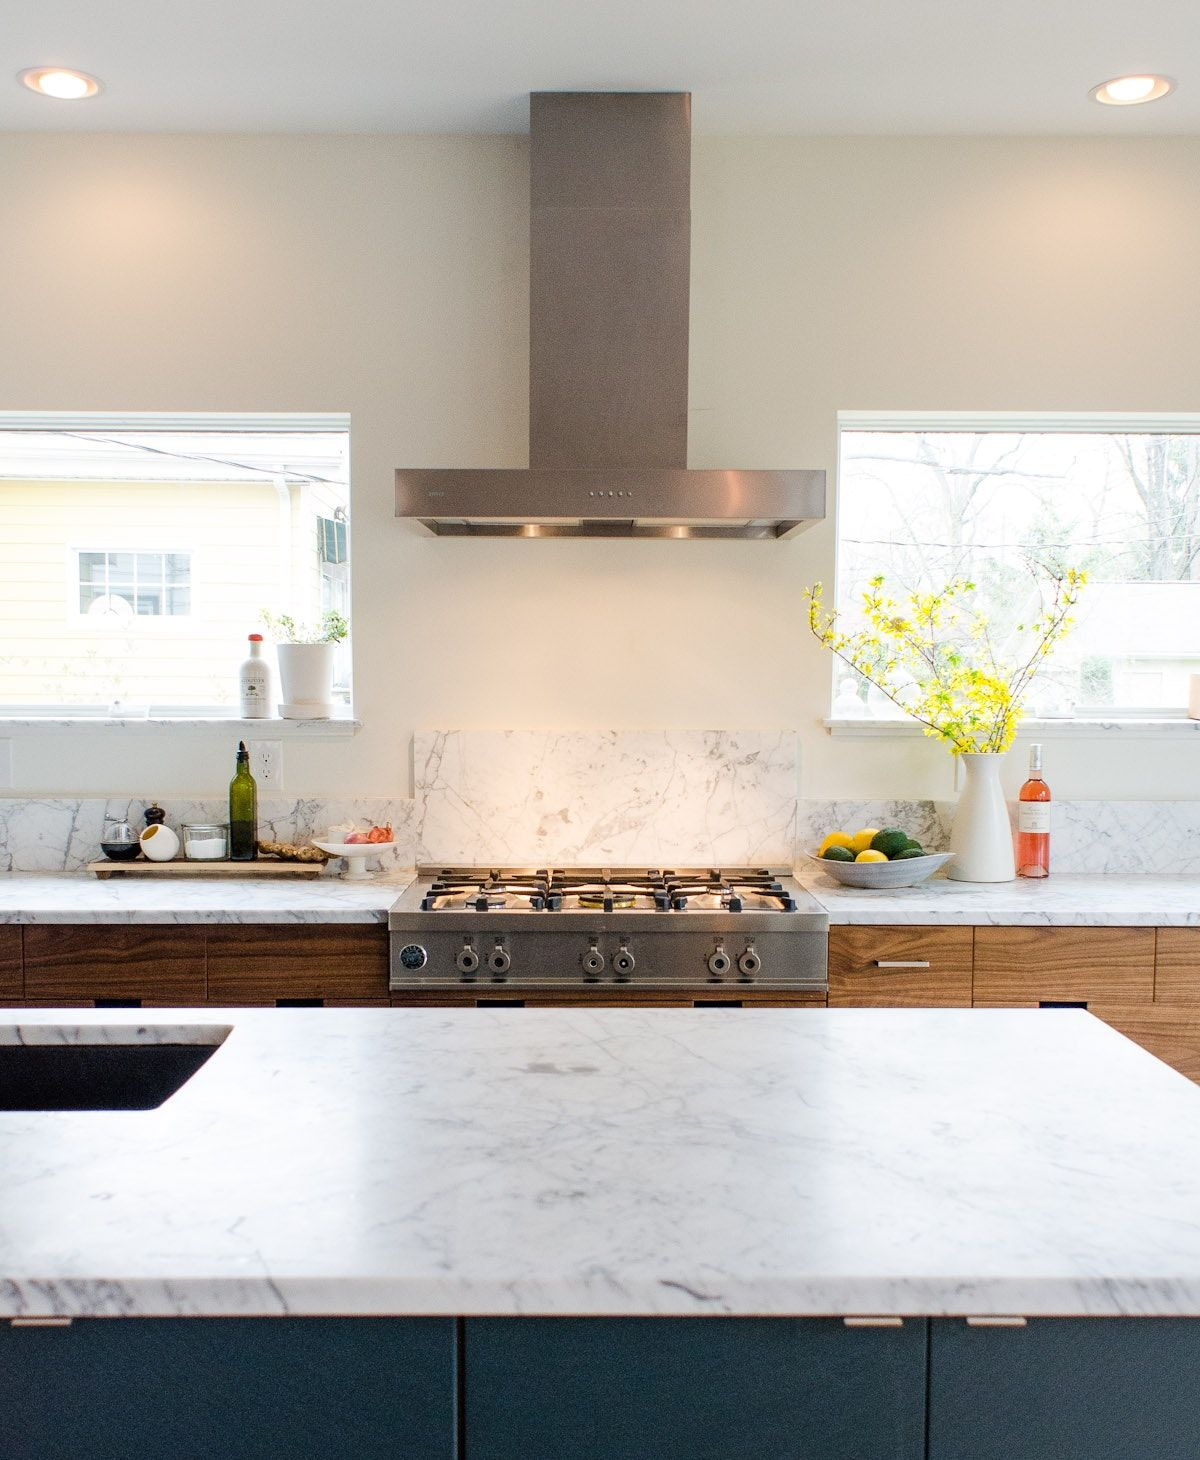 How Much Did Your Marble Countertops Cost Replacing Kitchen Countertops Kitchen Renovation Kitchen Countertops